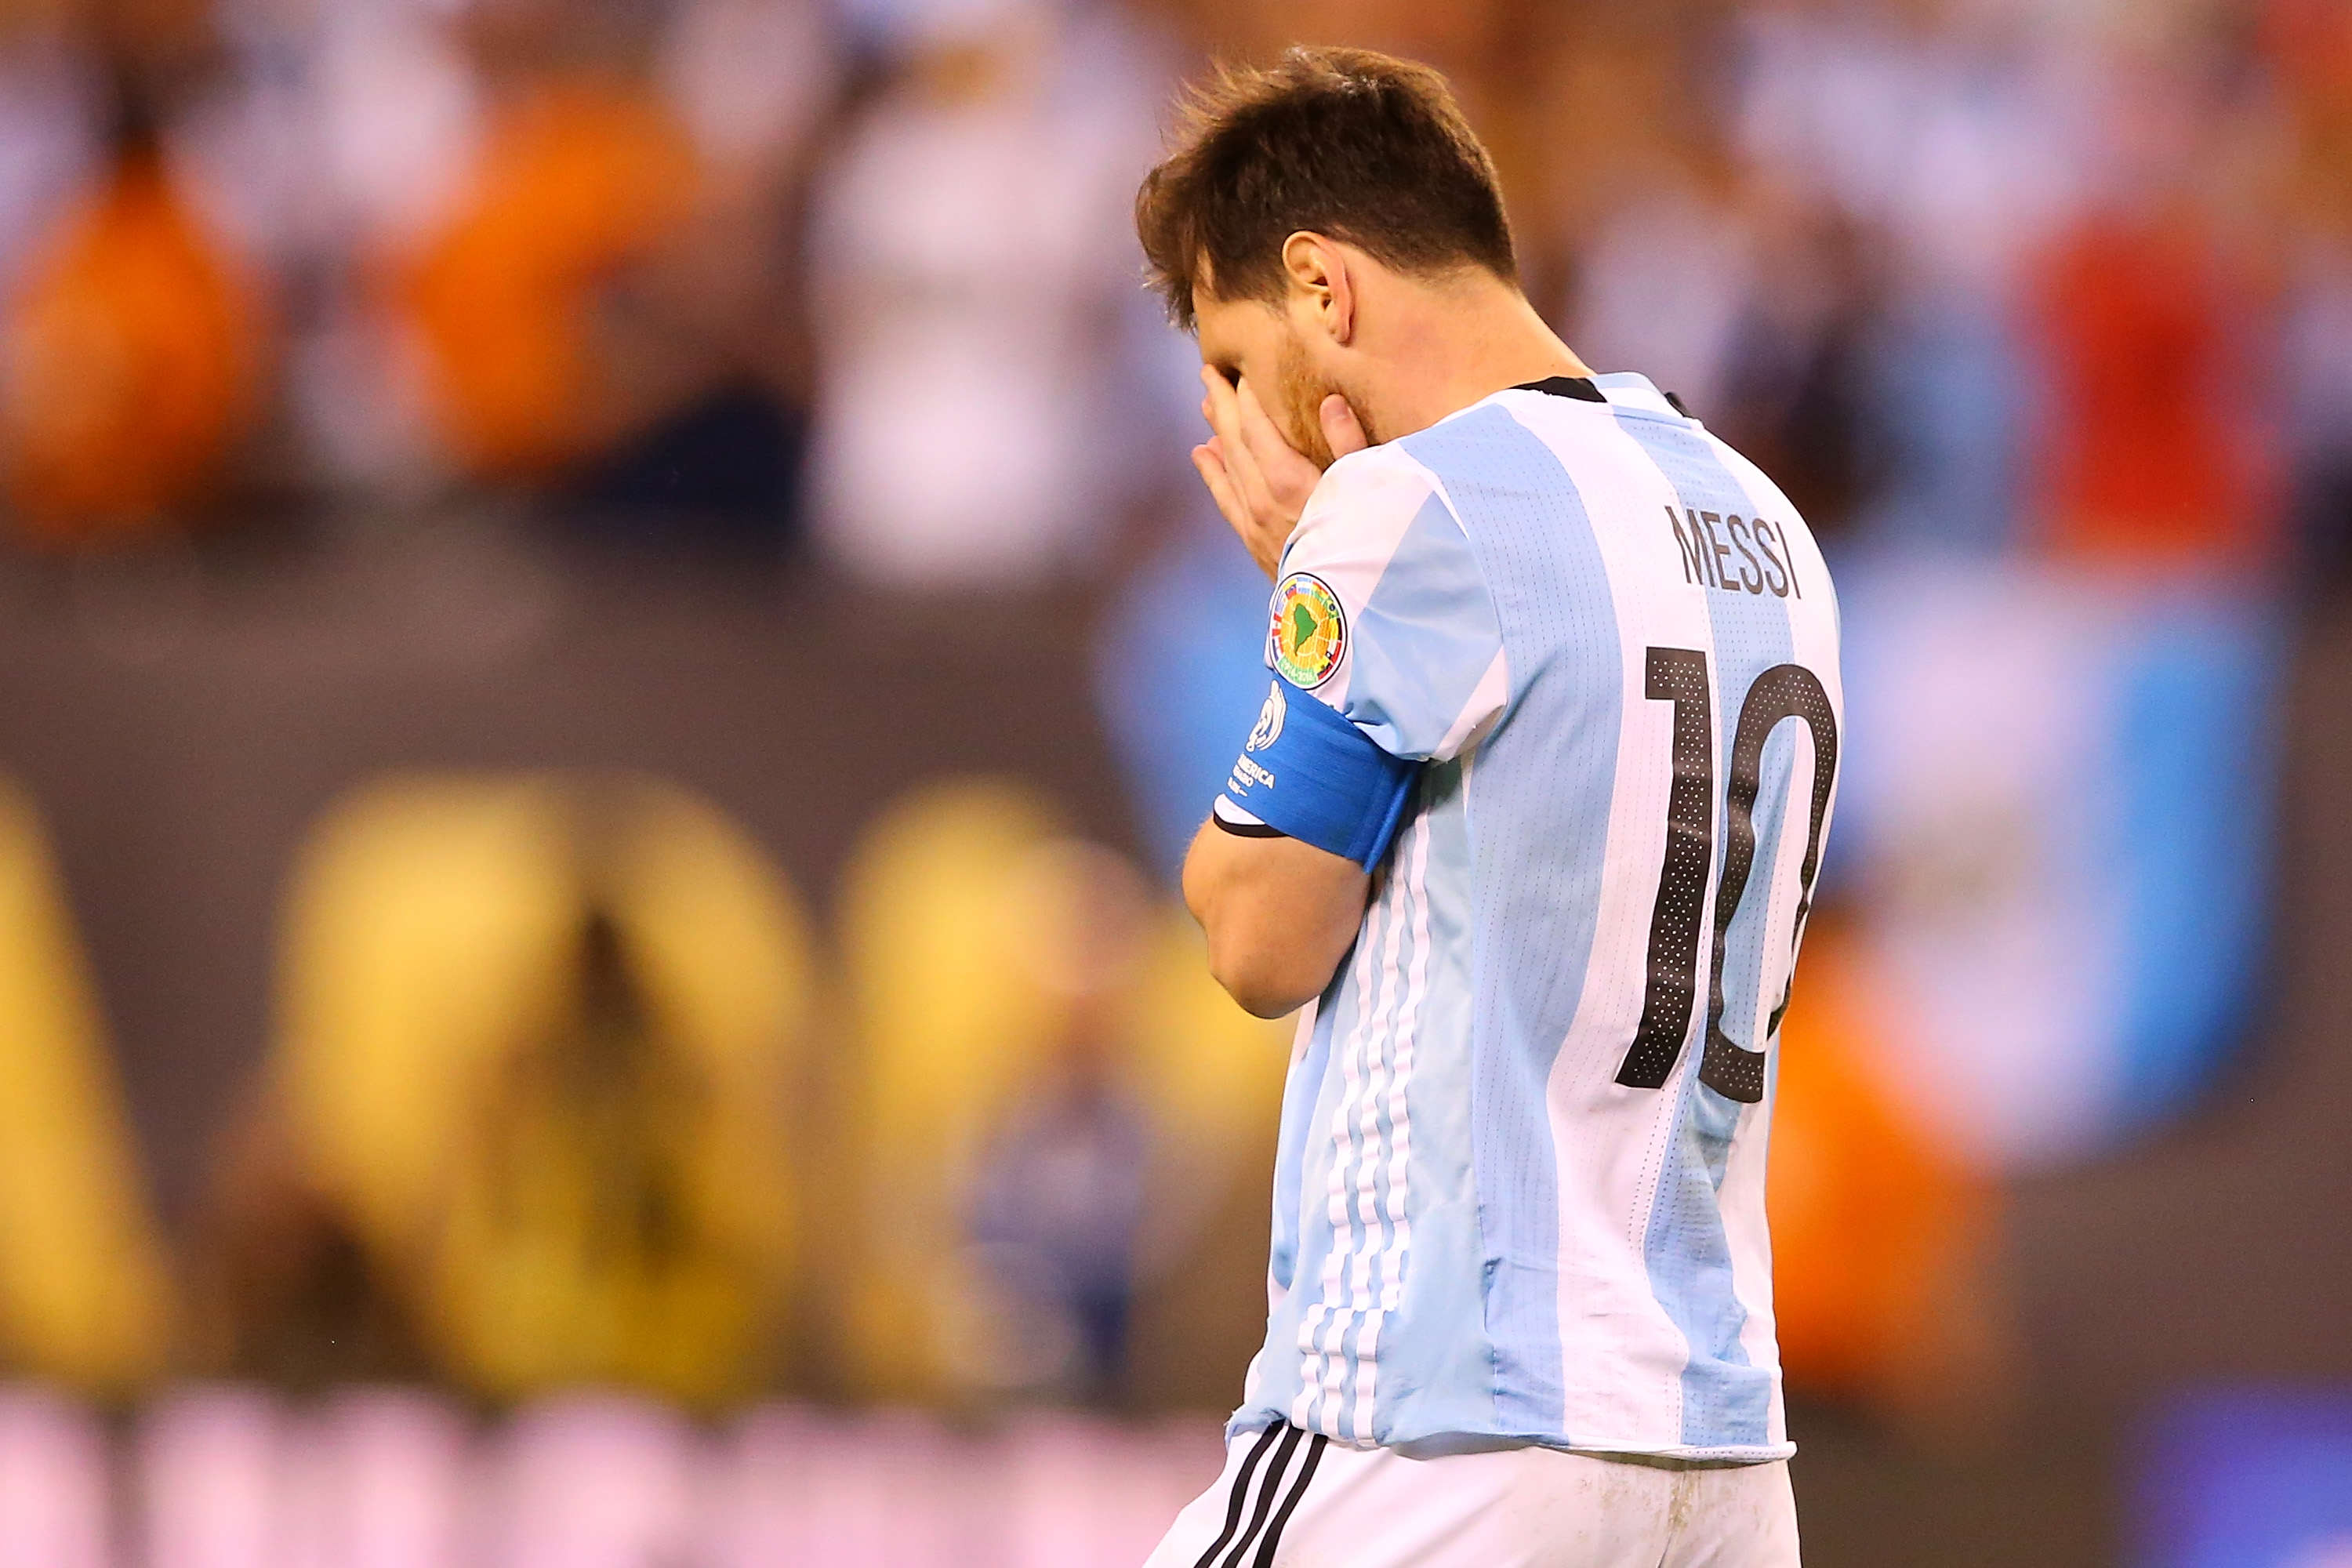 Messi And Co Retire, But All Is Not As It Seems GettyImages 543248604